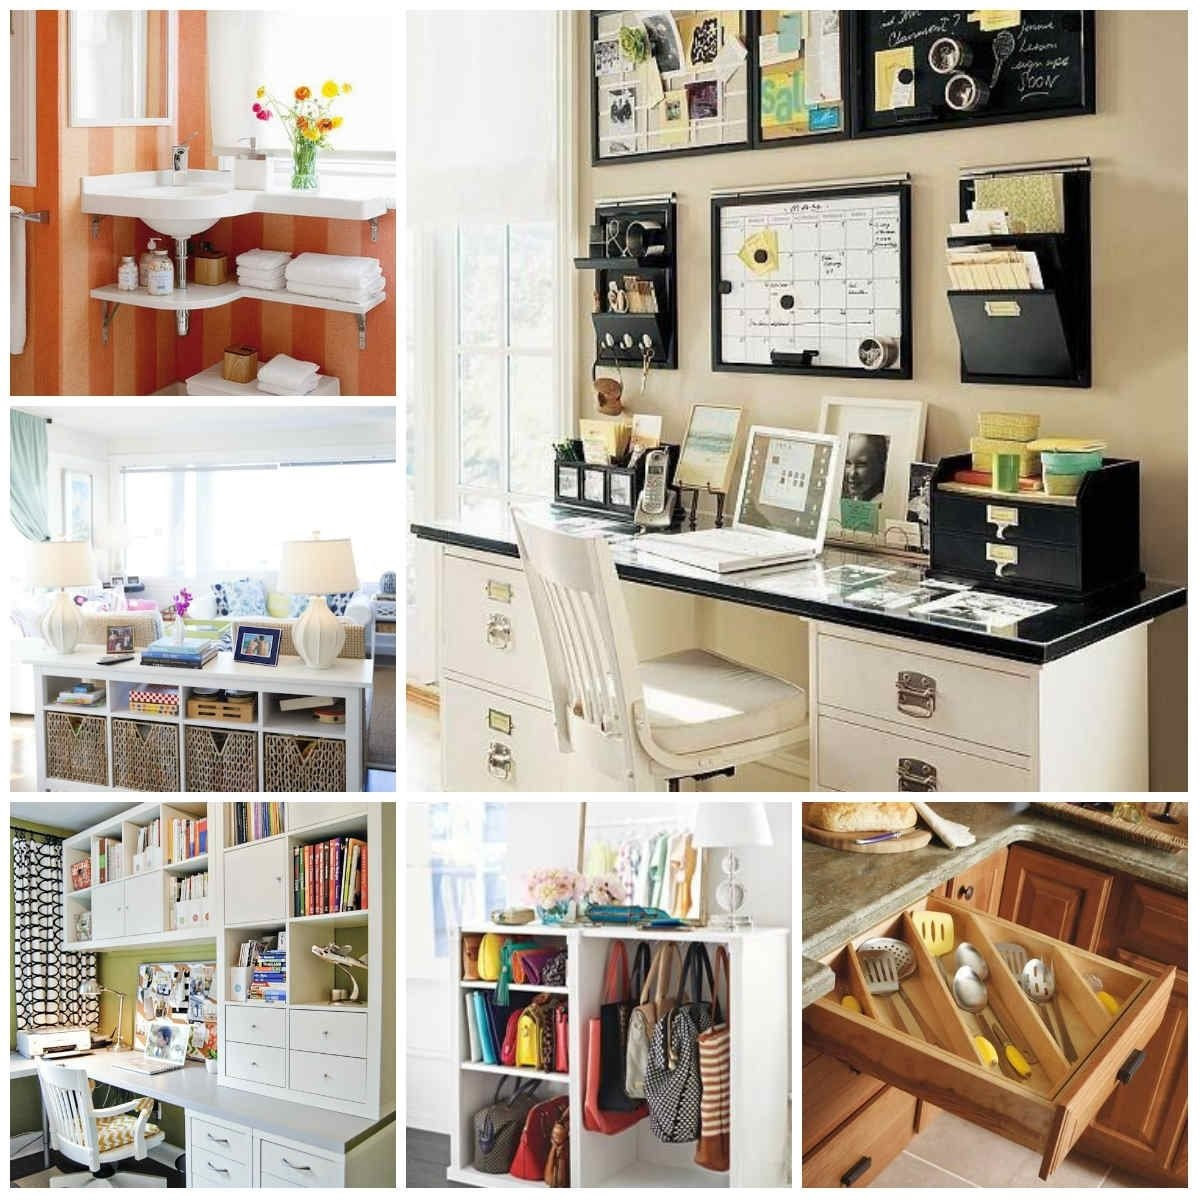 10 Most Popular Home Organization Tips And Ideas office astounding home office organization ideas ideas for office 2020